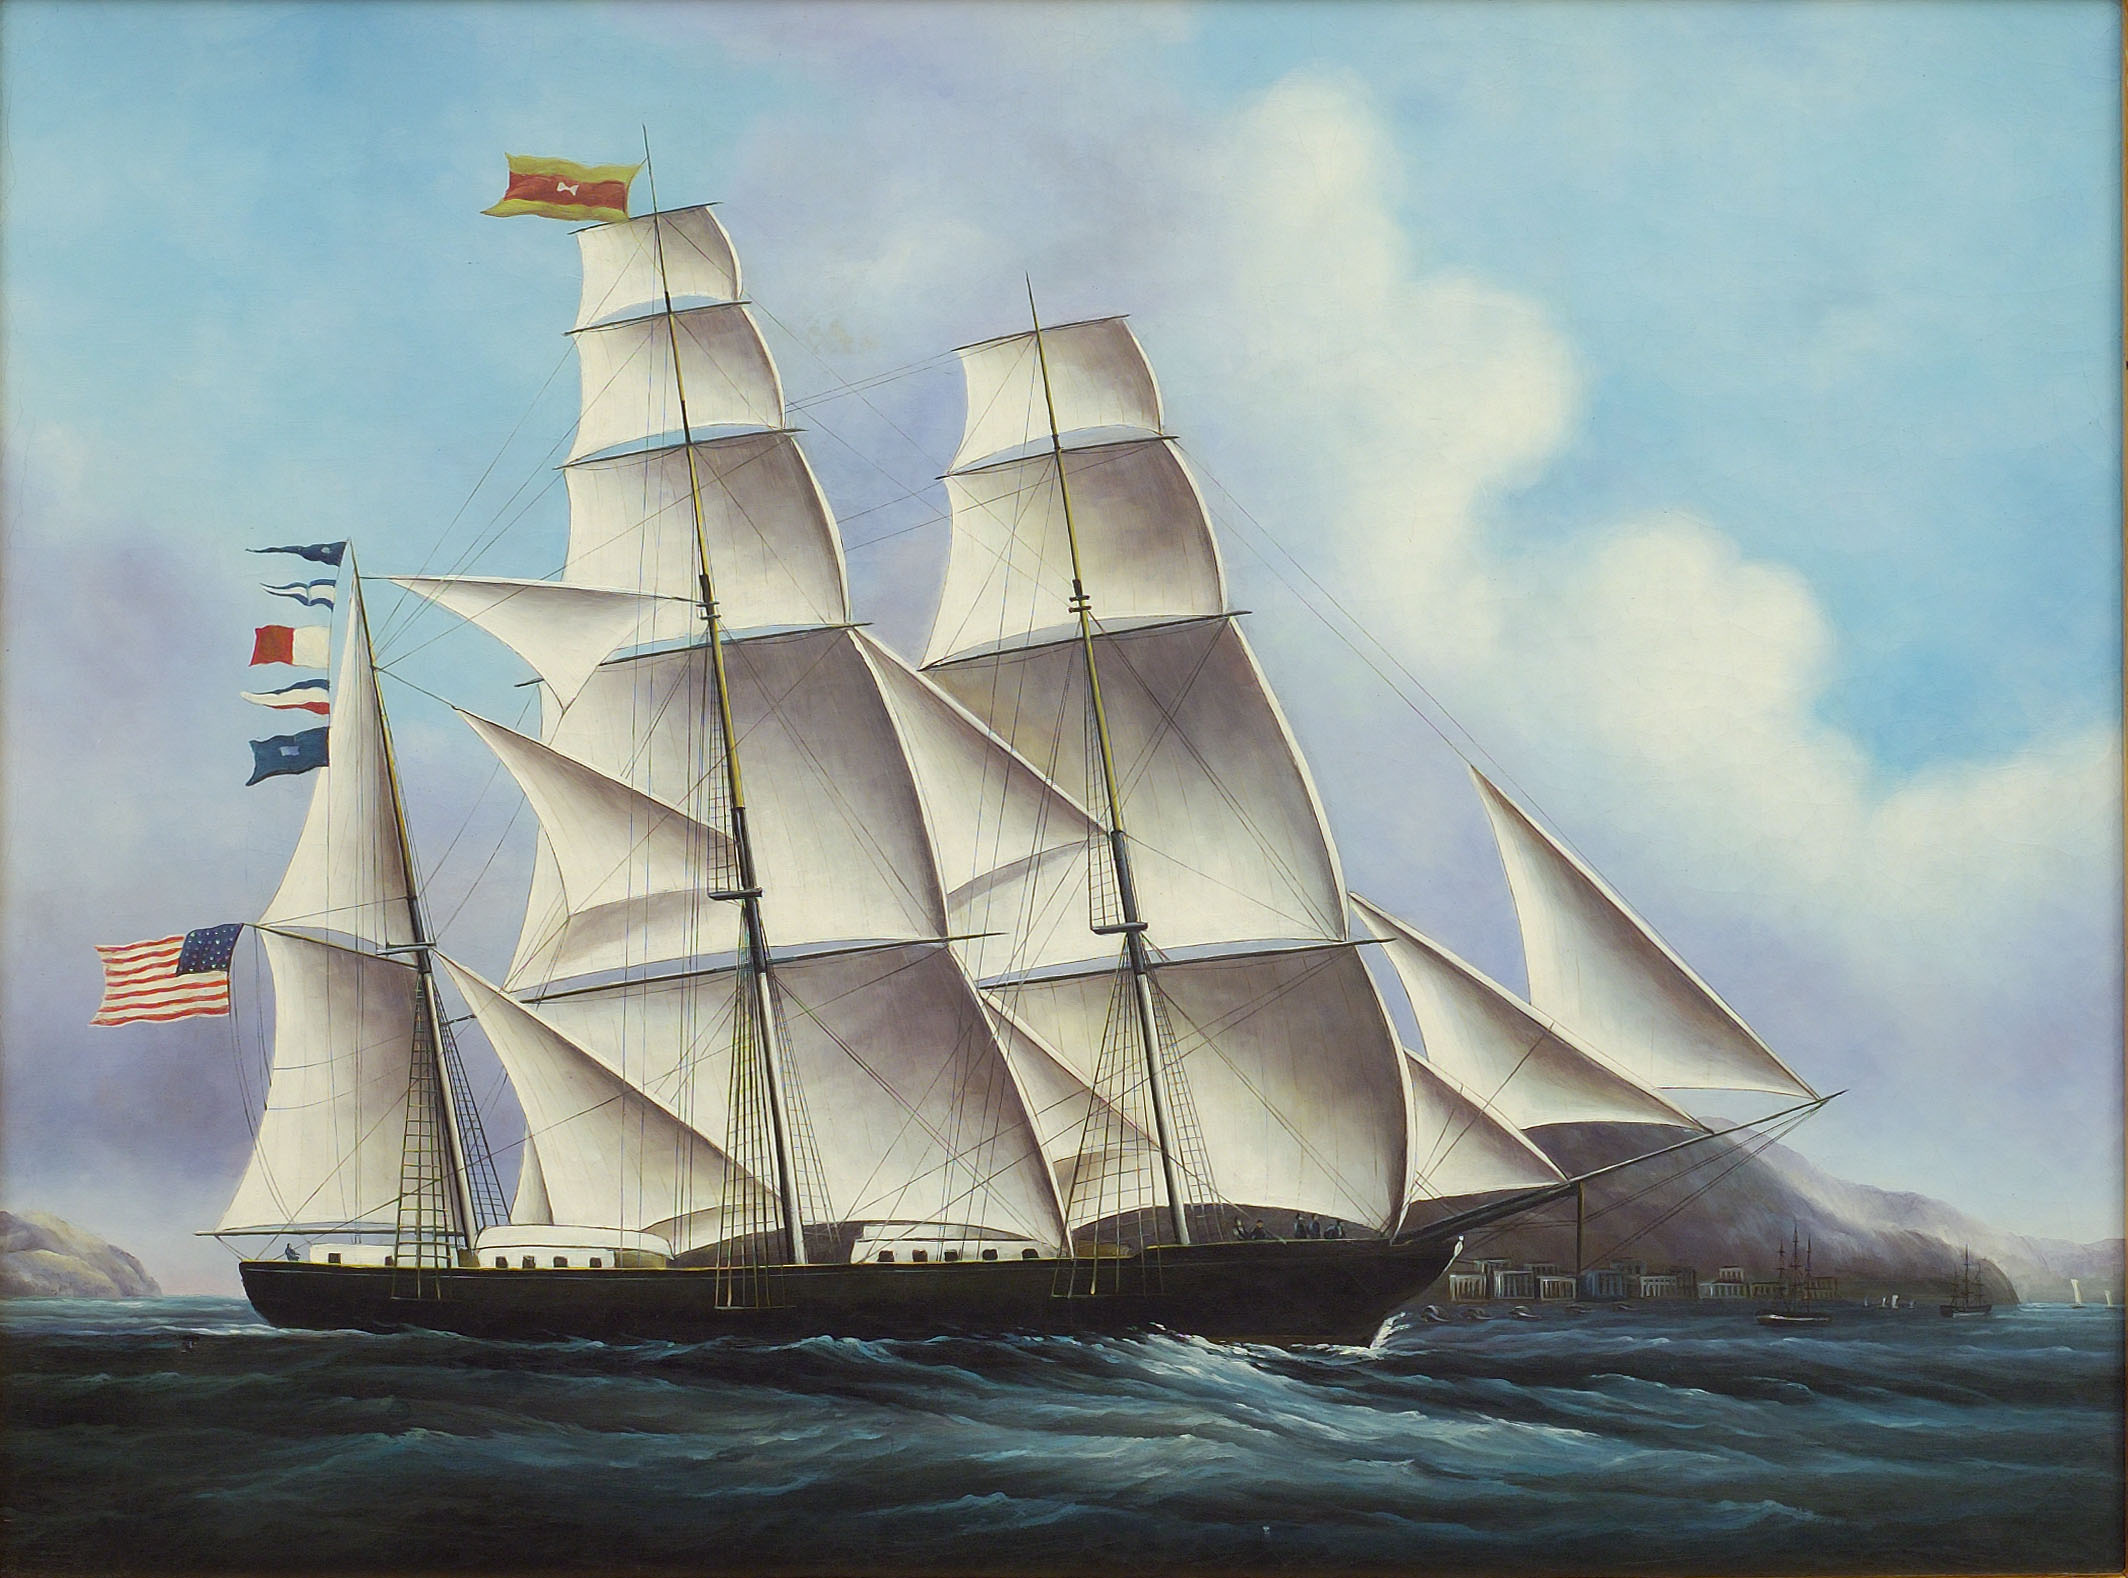 the clipper ships the synonymous of fast sailing in the 19th century Clipper a fast sailing ship, especially one of 19th-century design with concave bows and raked masts cite this article pick a style below, and copy the text for your bibliography.